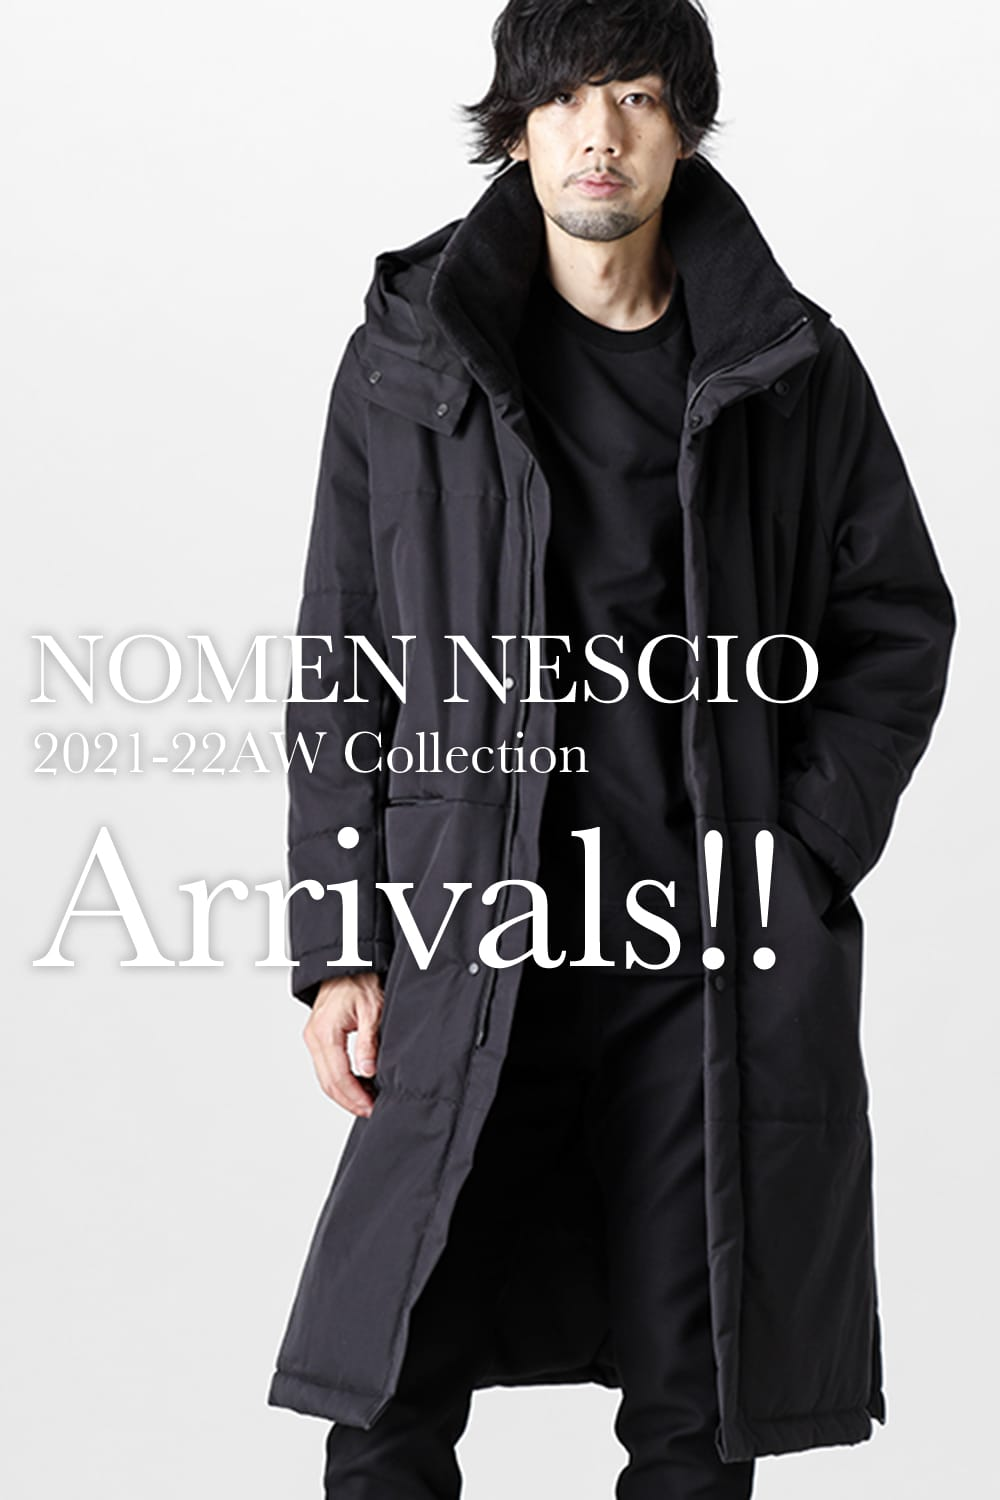 The NOMEN NESSCIO 21 AW collection, which is handled by .LOGY Kyoto (Kyoto Fujii Daimaru), is now in stock!